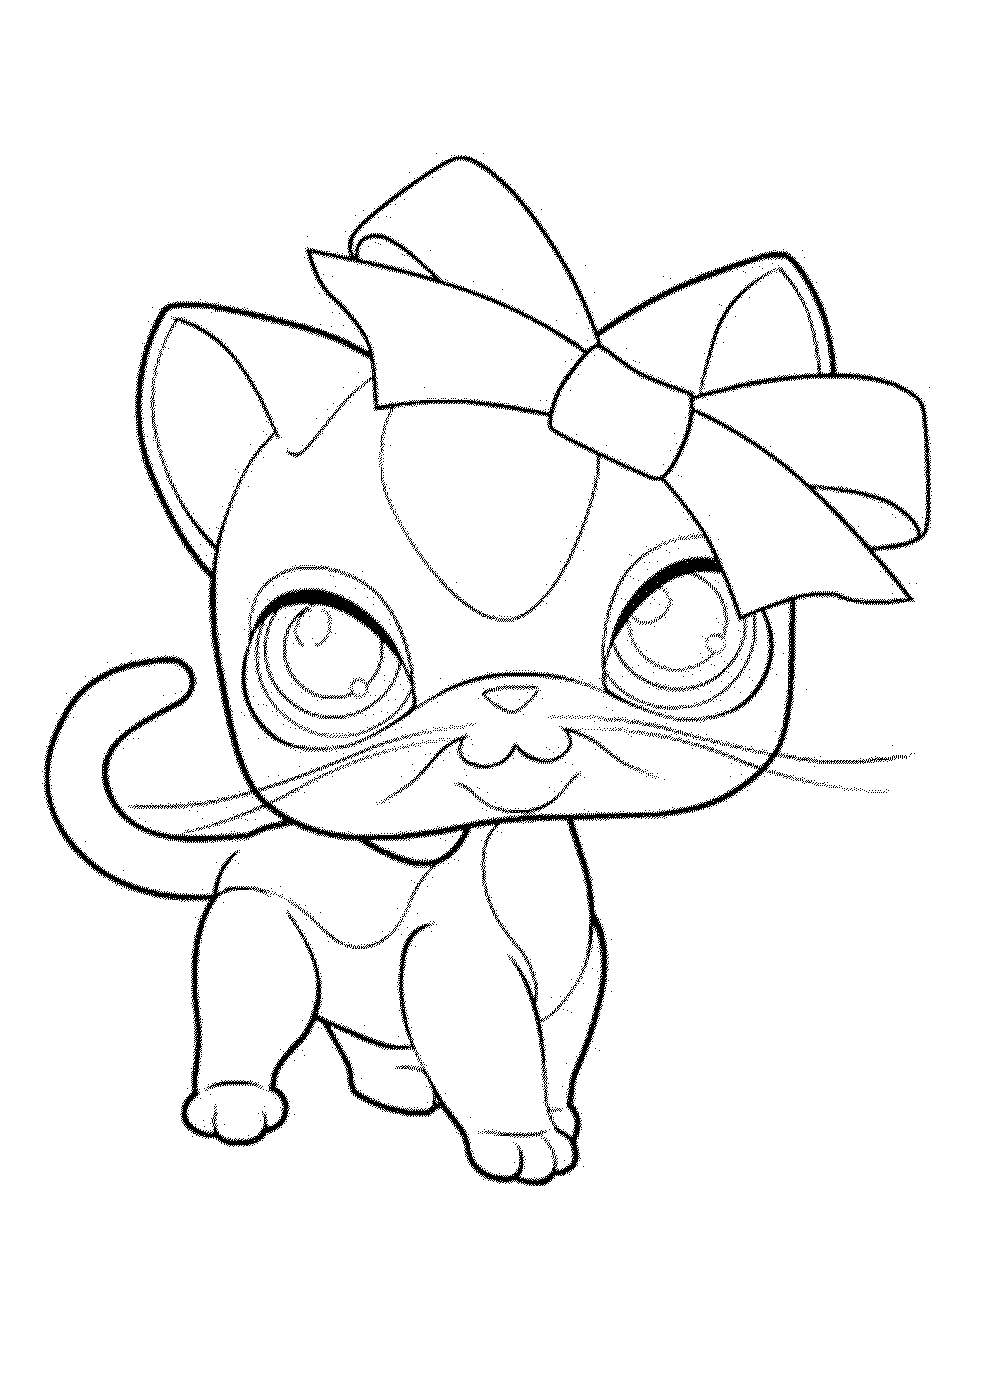 Lps Coloring Pages 38 With Lps Coloring Pages